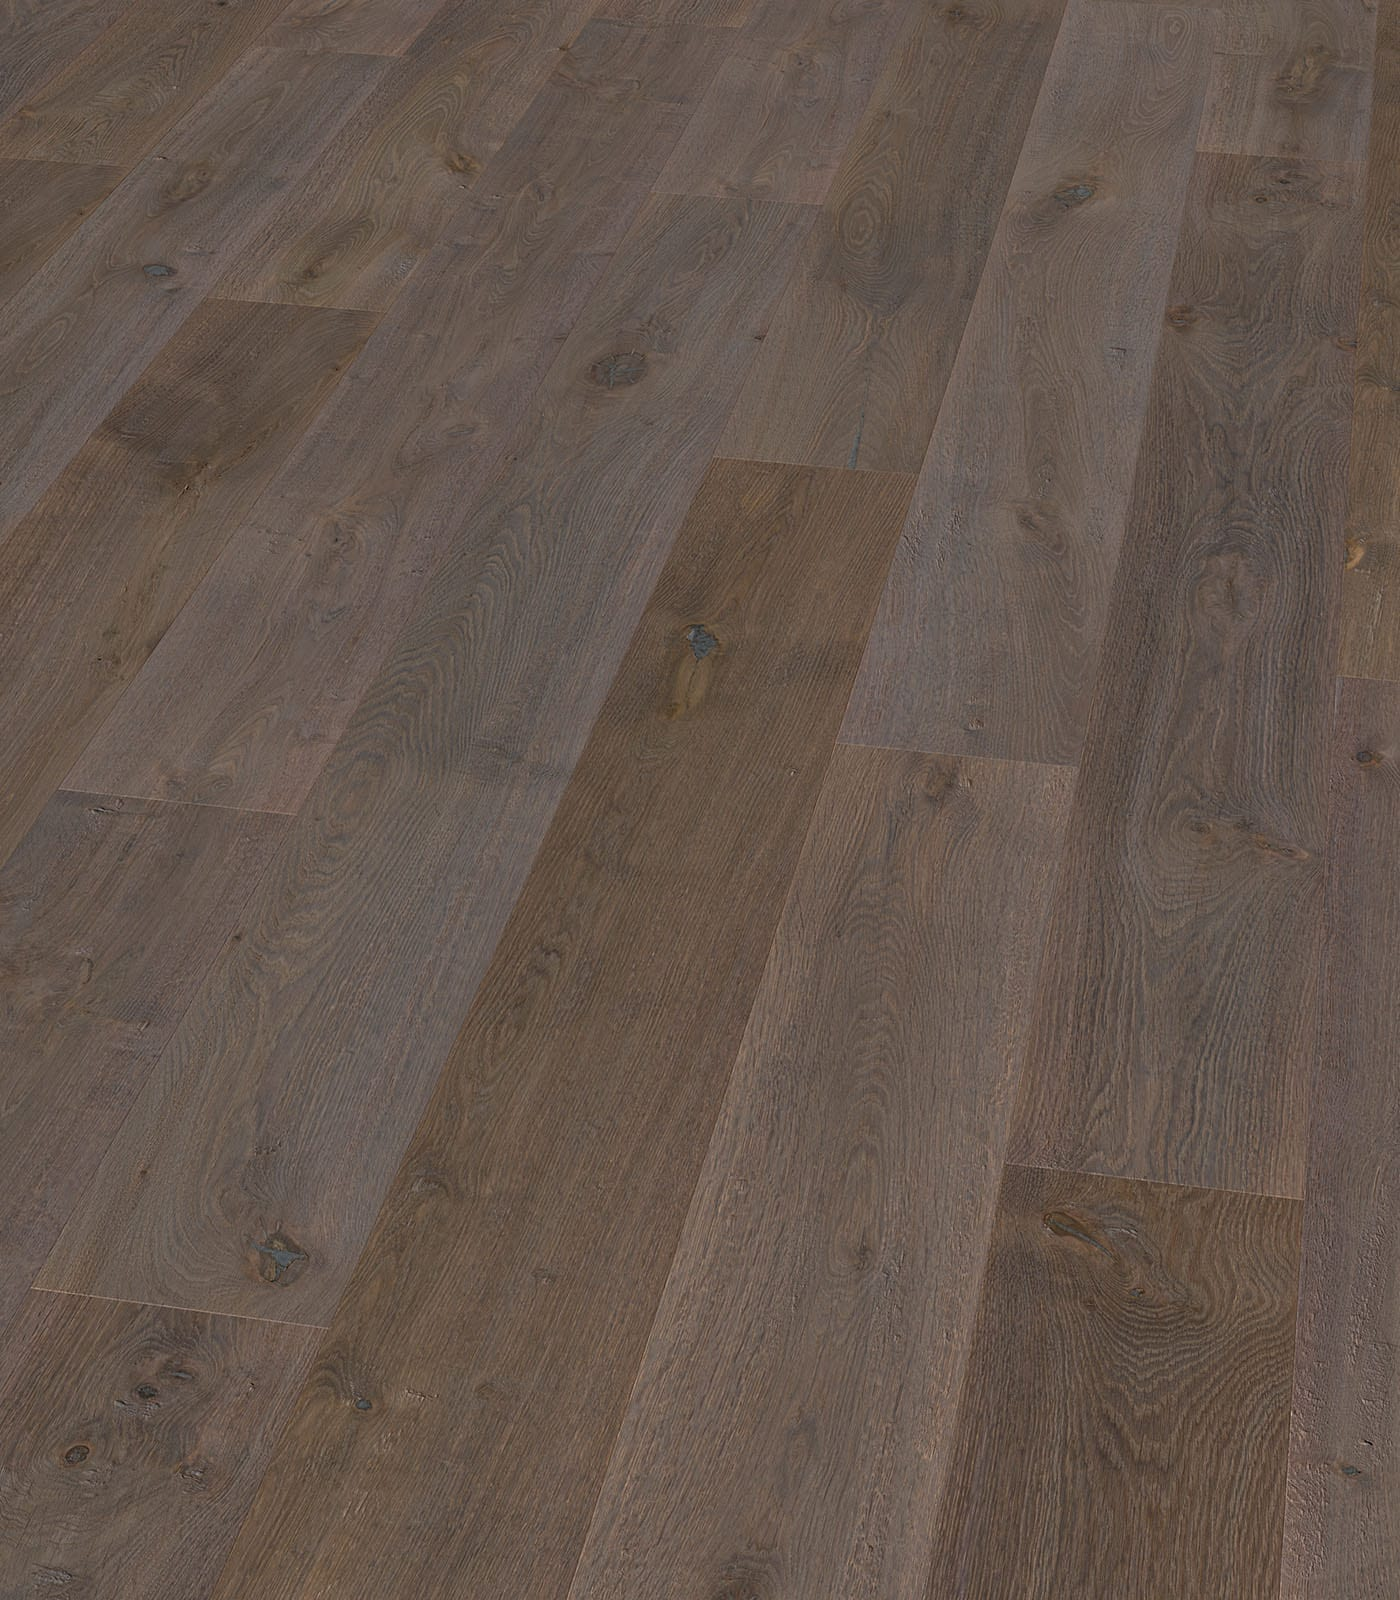 Jackson Hole-Lifestyle Collection-European Oak floors-angle